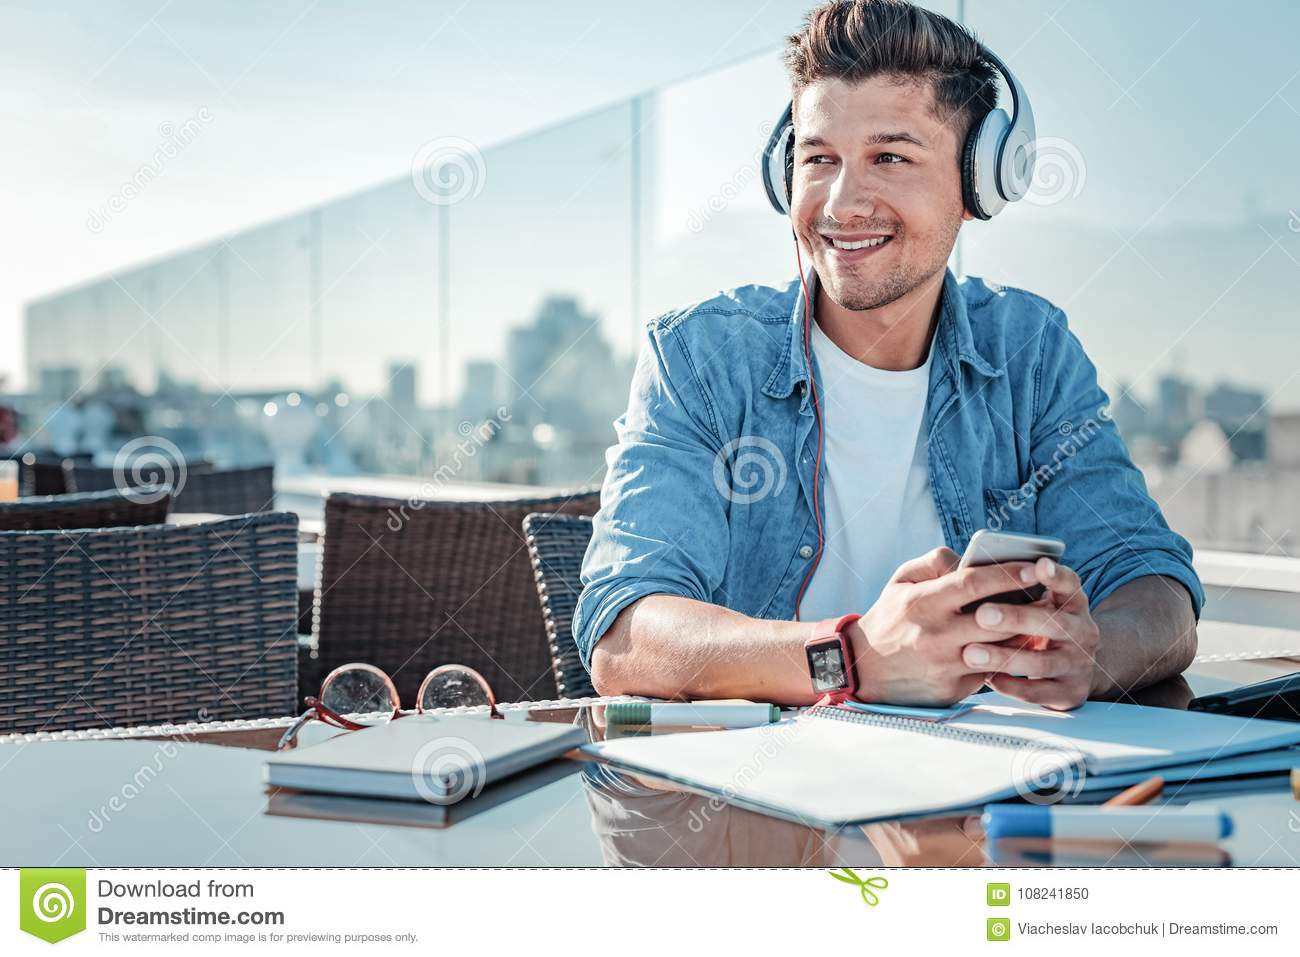 Beaming young man sitting on terrace and listening to music